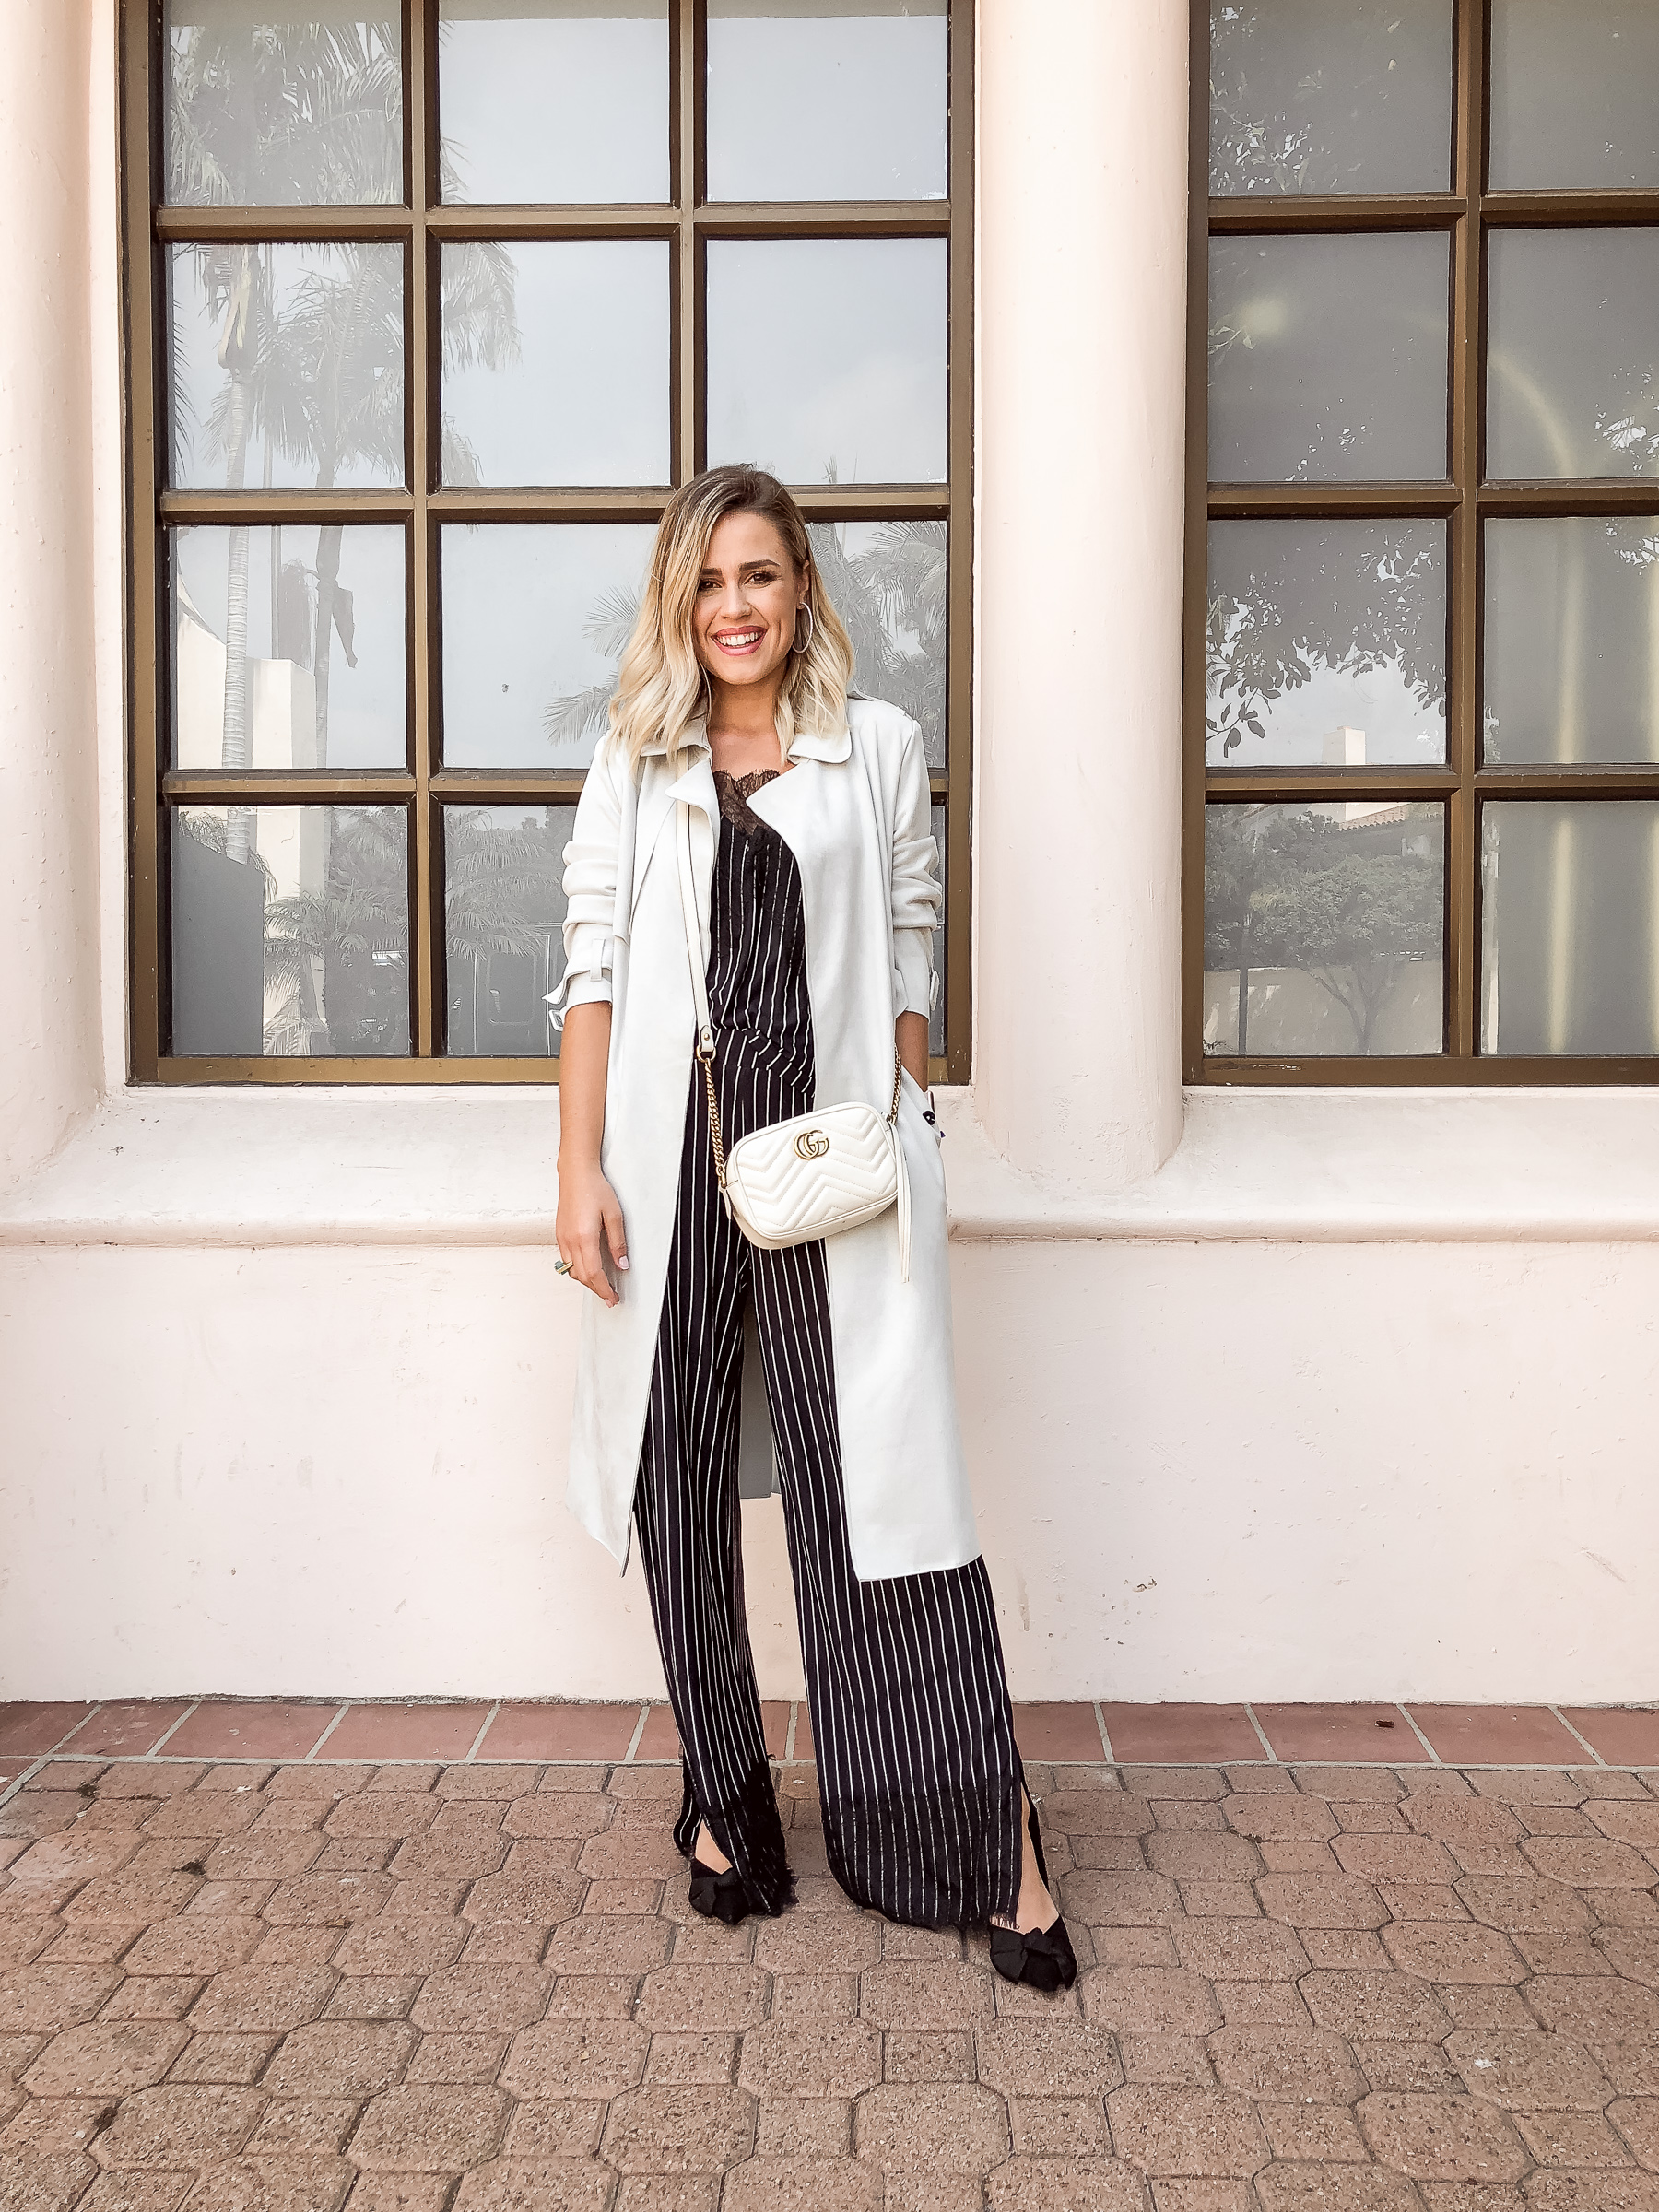 Houston fashion blogger Uptown with Elly Brown wears a matching stripe set form Zara